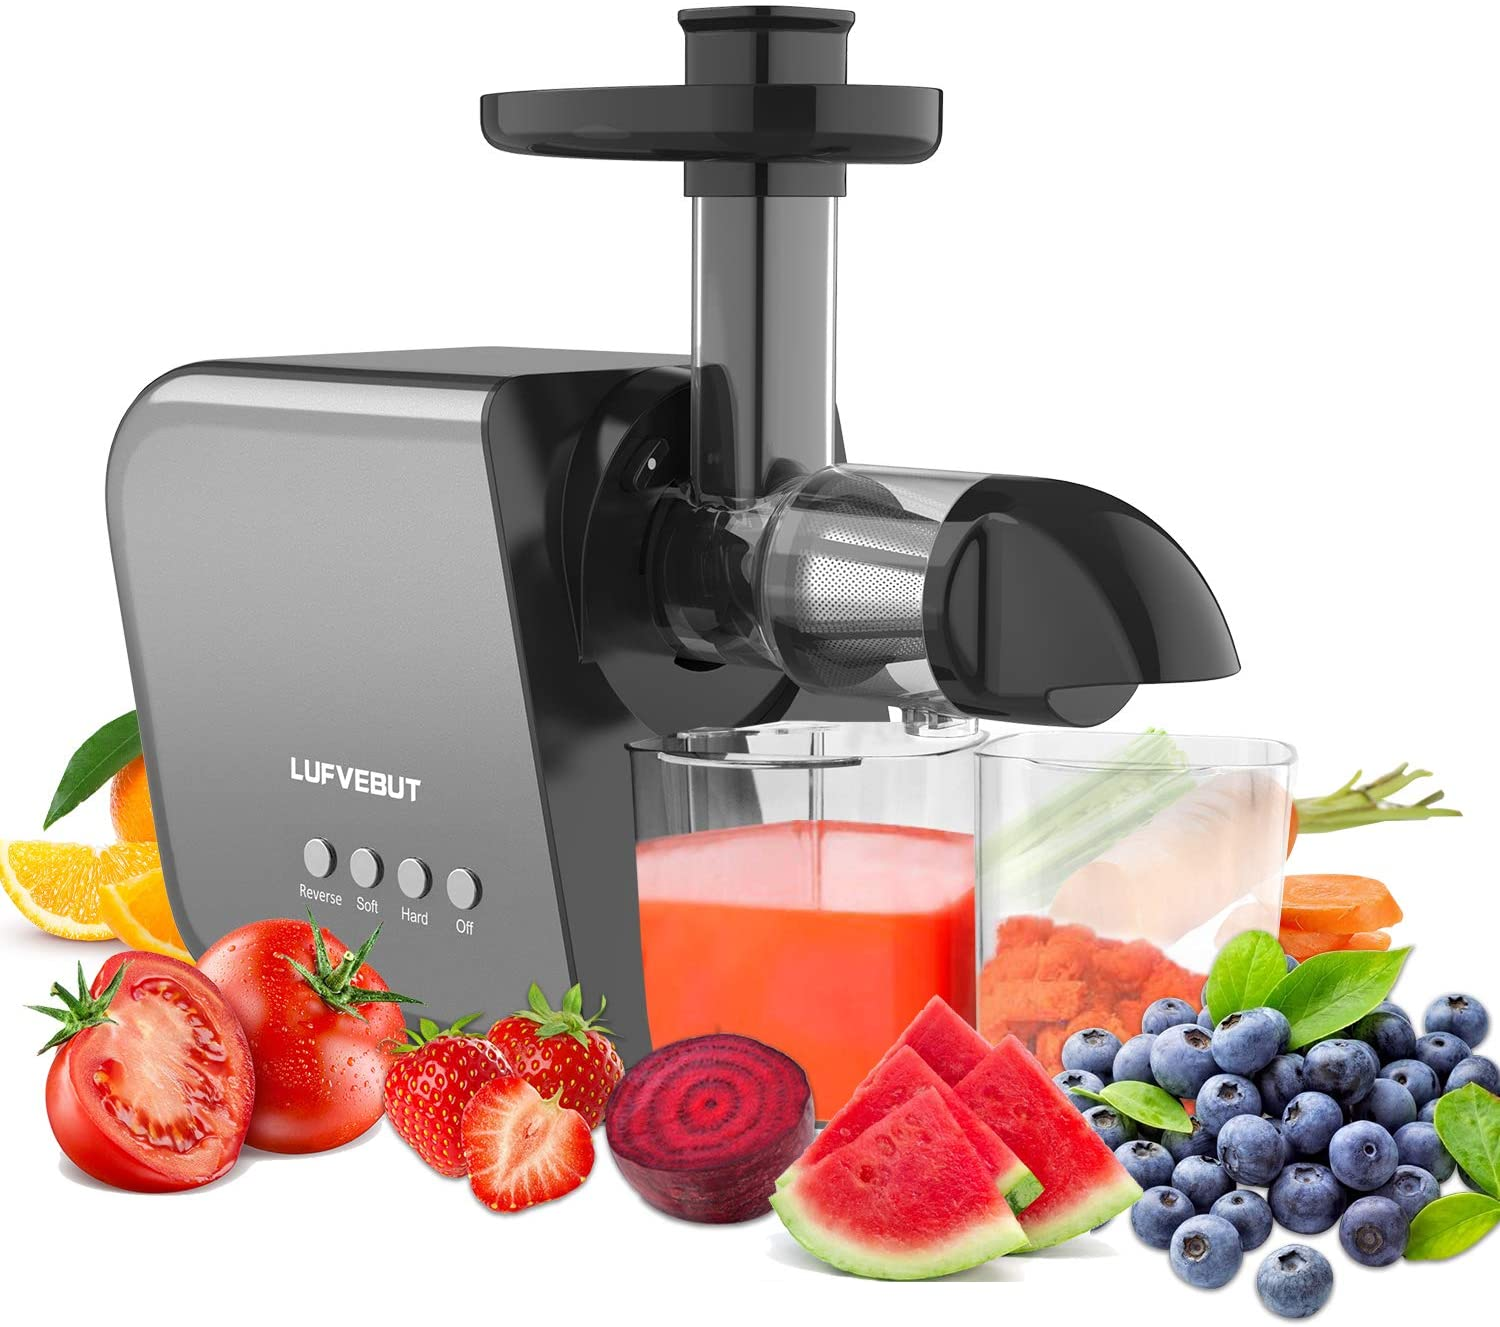 Home Juicers Fruit Vegetable Slow Masticating Juicer Machines Cold Press High Yield Extractor BPA-Free Quiet Motor Reverse Function Easy to Clean for Celery Carrot Citrus Greens Ginger Wheatgrass